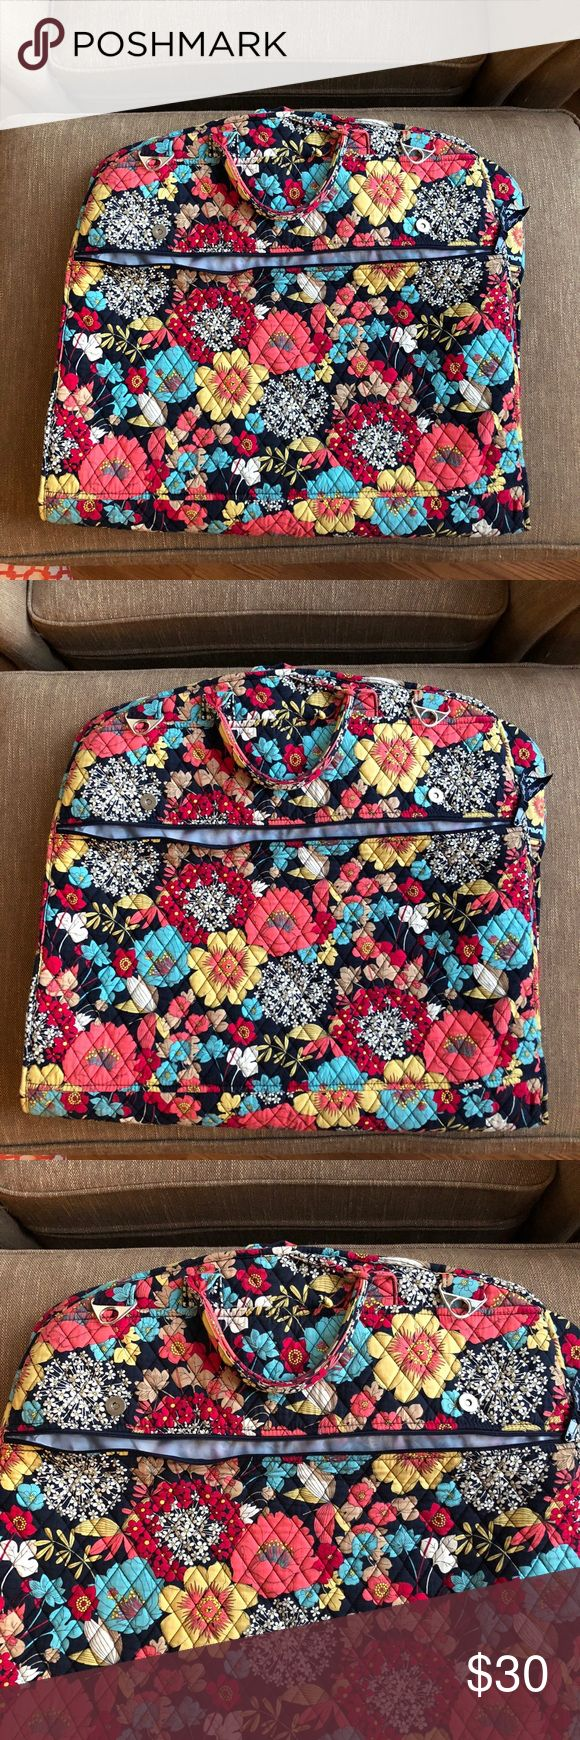 Vera Bradley Garment Bag Vera Bradley Garment Bag - Exterior zipper pocket as well. Excellent condition Vera Bradley Bags Travel Bags